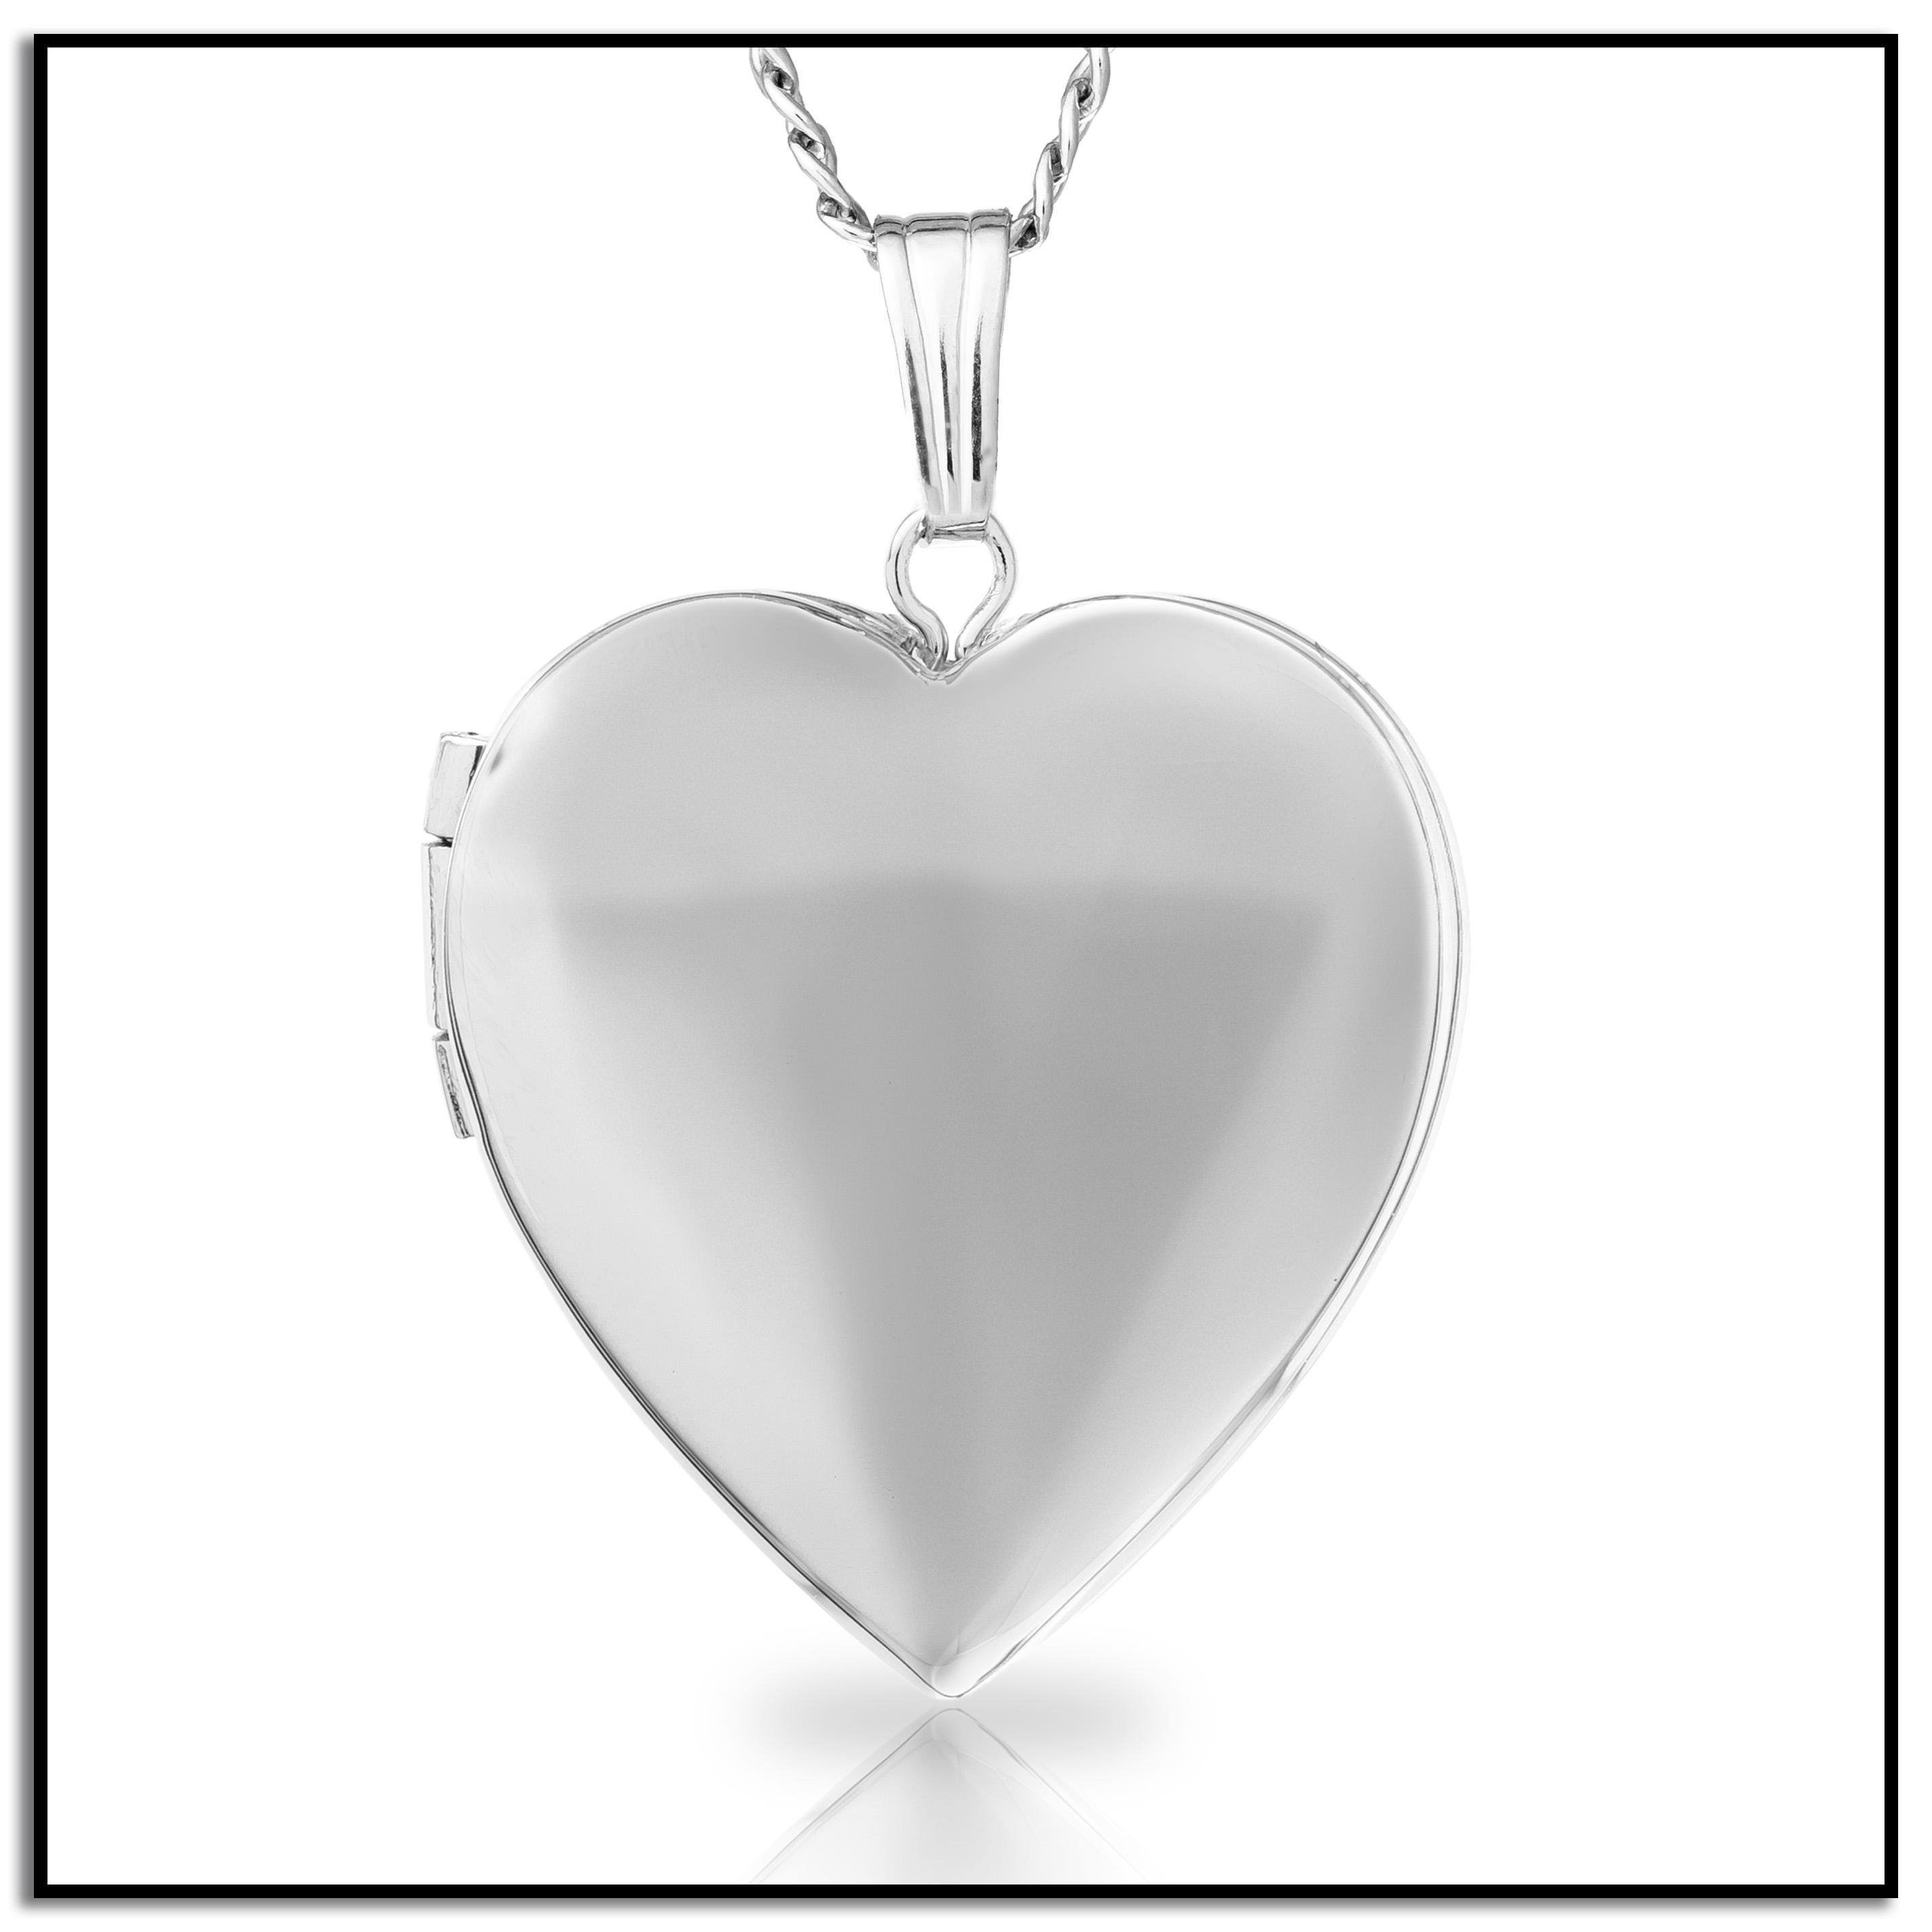 ml pendant necklace photo heart jewelry beloved locket lagos